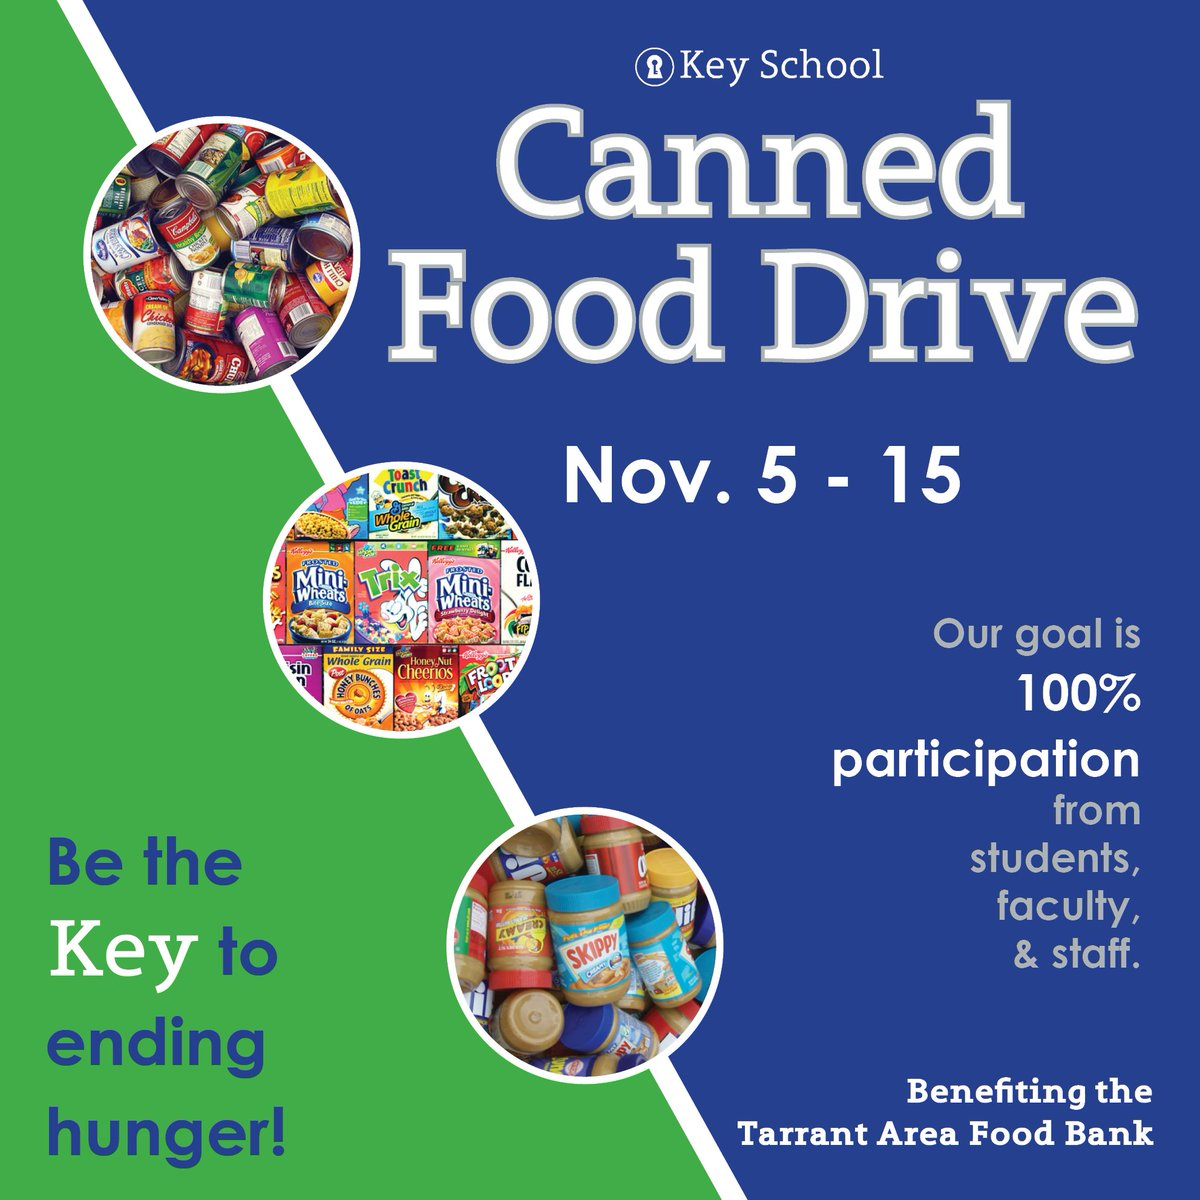 It's time for the Key School Food Drive benefiting the @TAFoodBank  Our goal is 100% participation from students and teachers.   #FoodDrive #GiveBack #Community